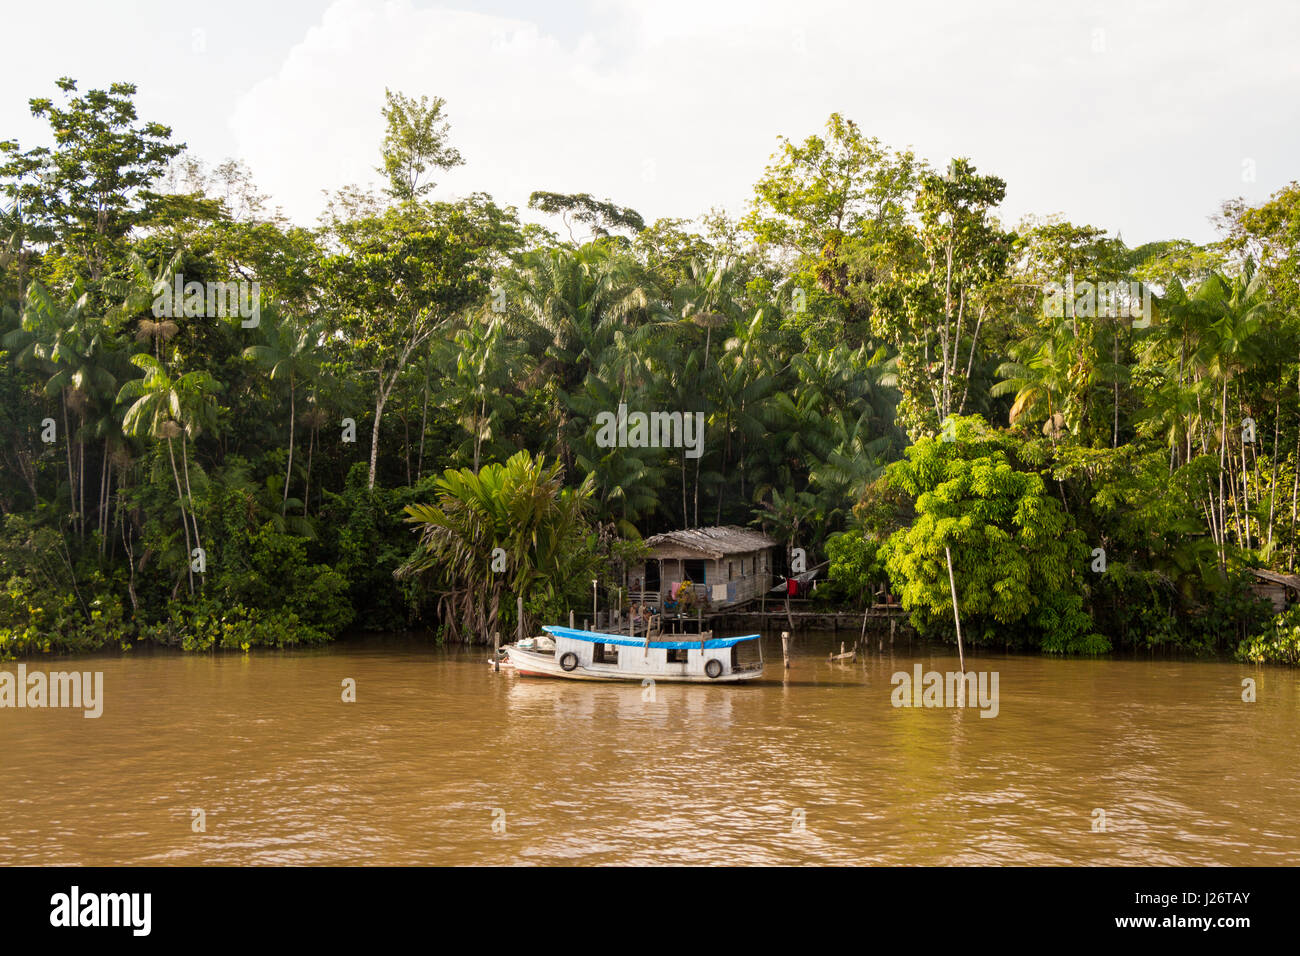 House of locals family lives by the Amazon river side, in Brazil. - Stock Image